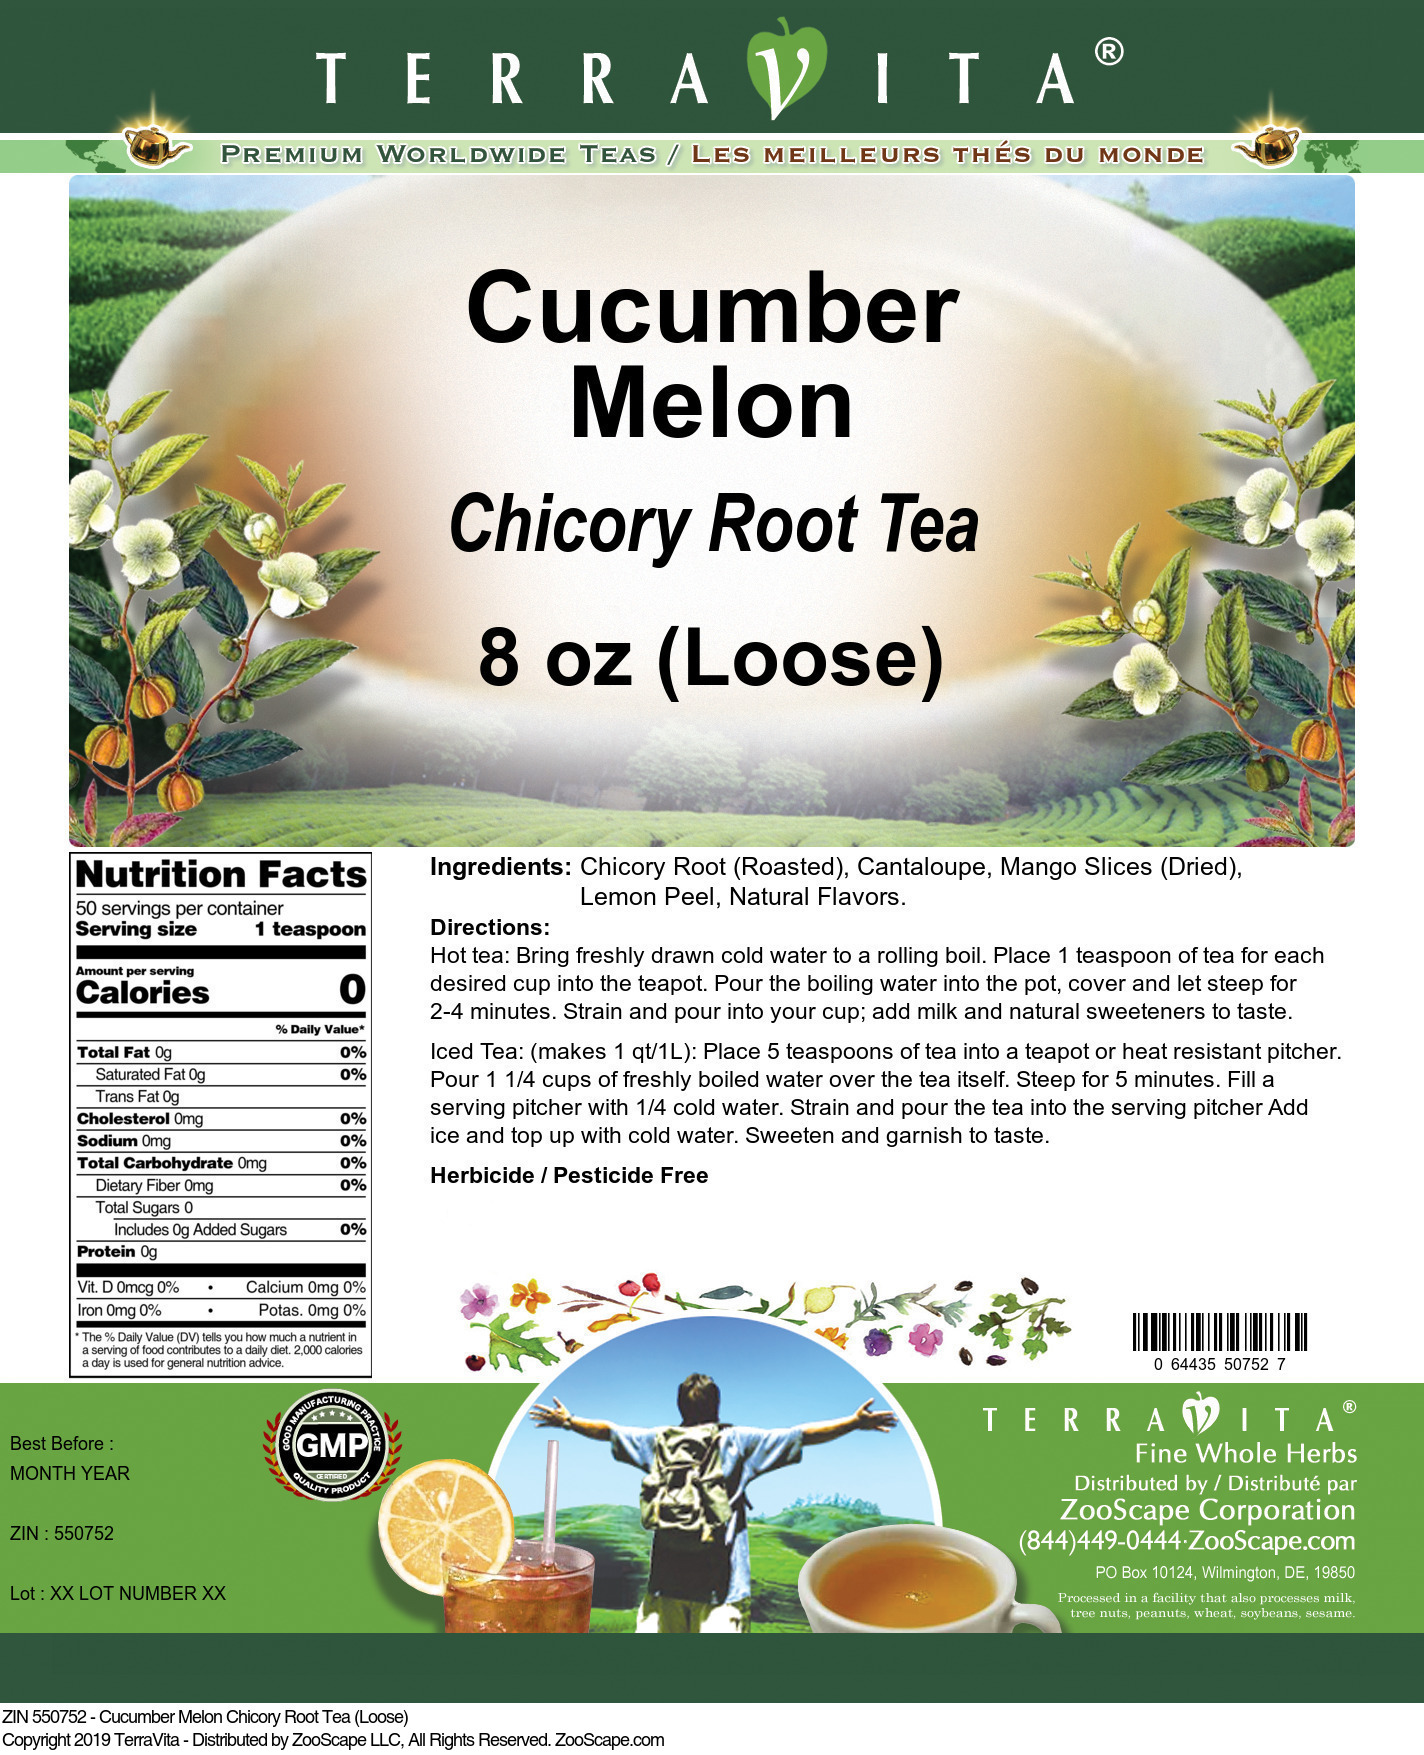 Cucumber Melon Chicory Root